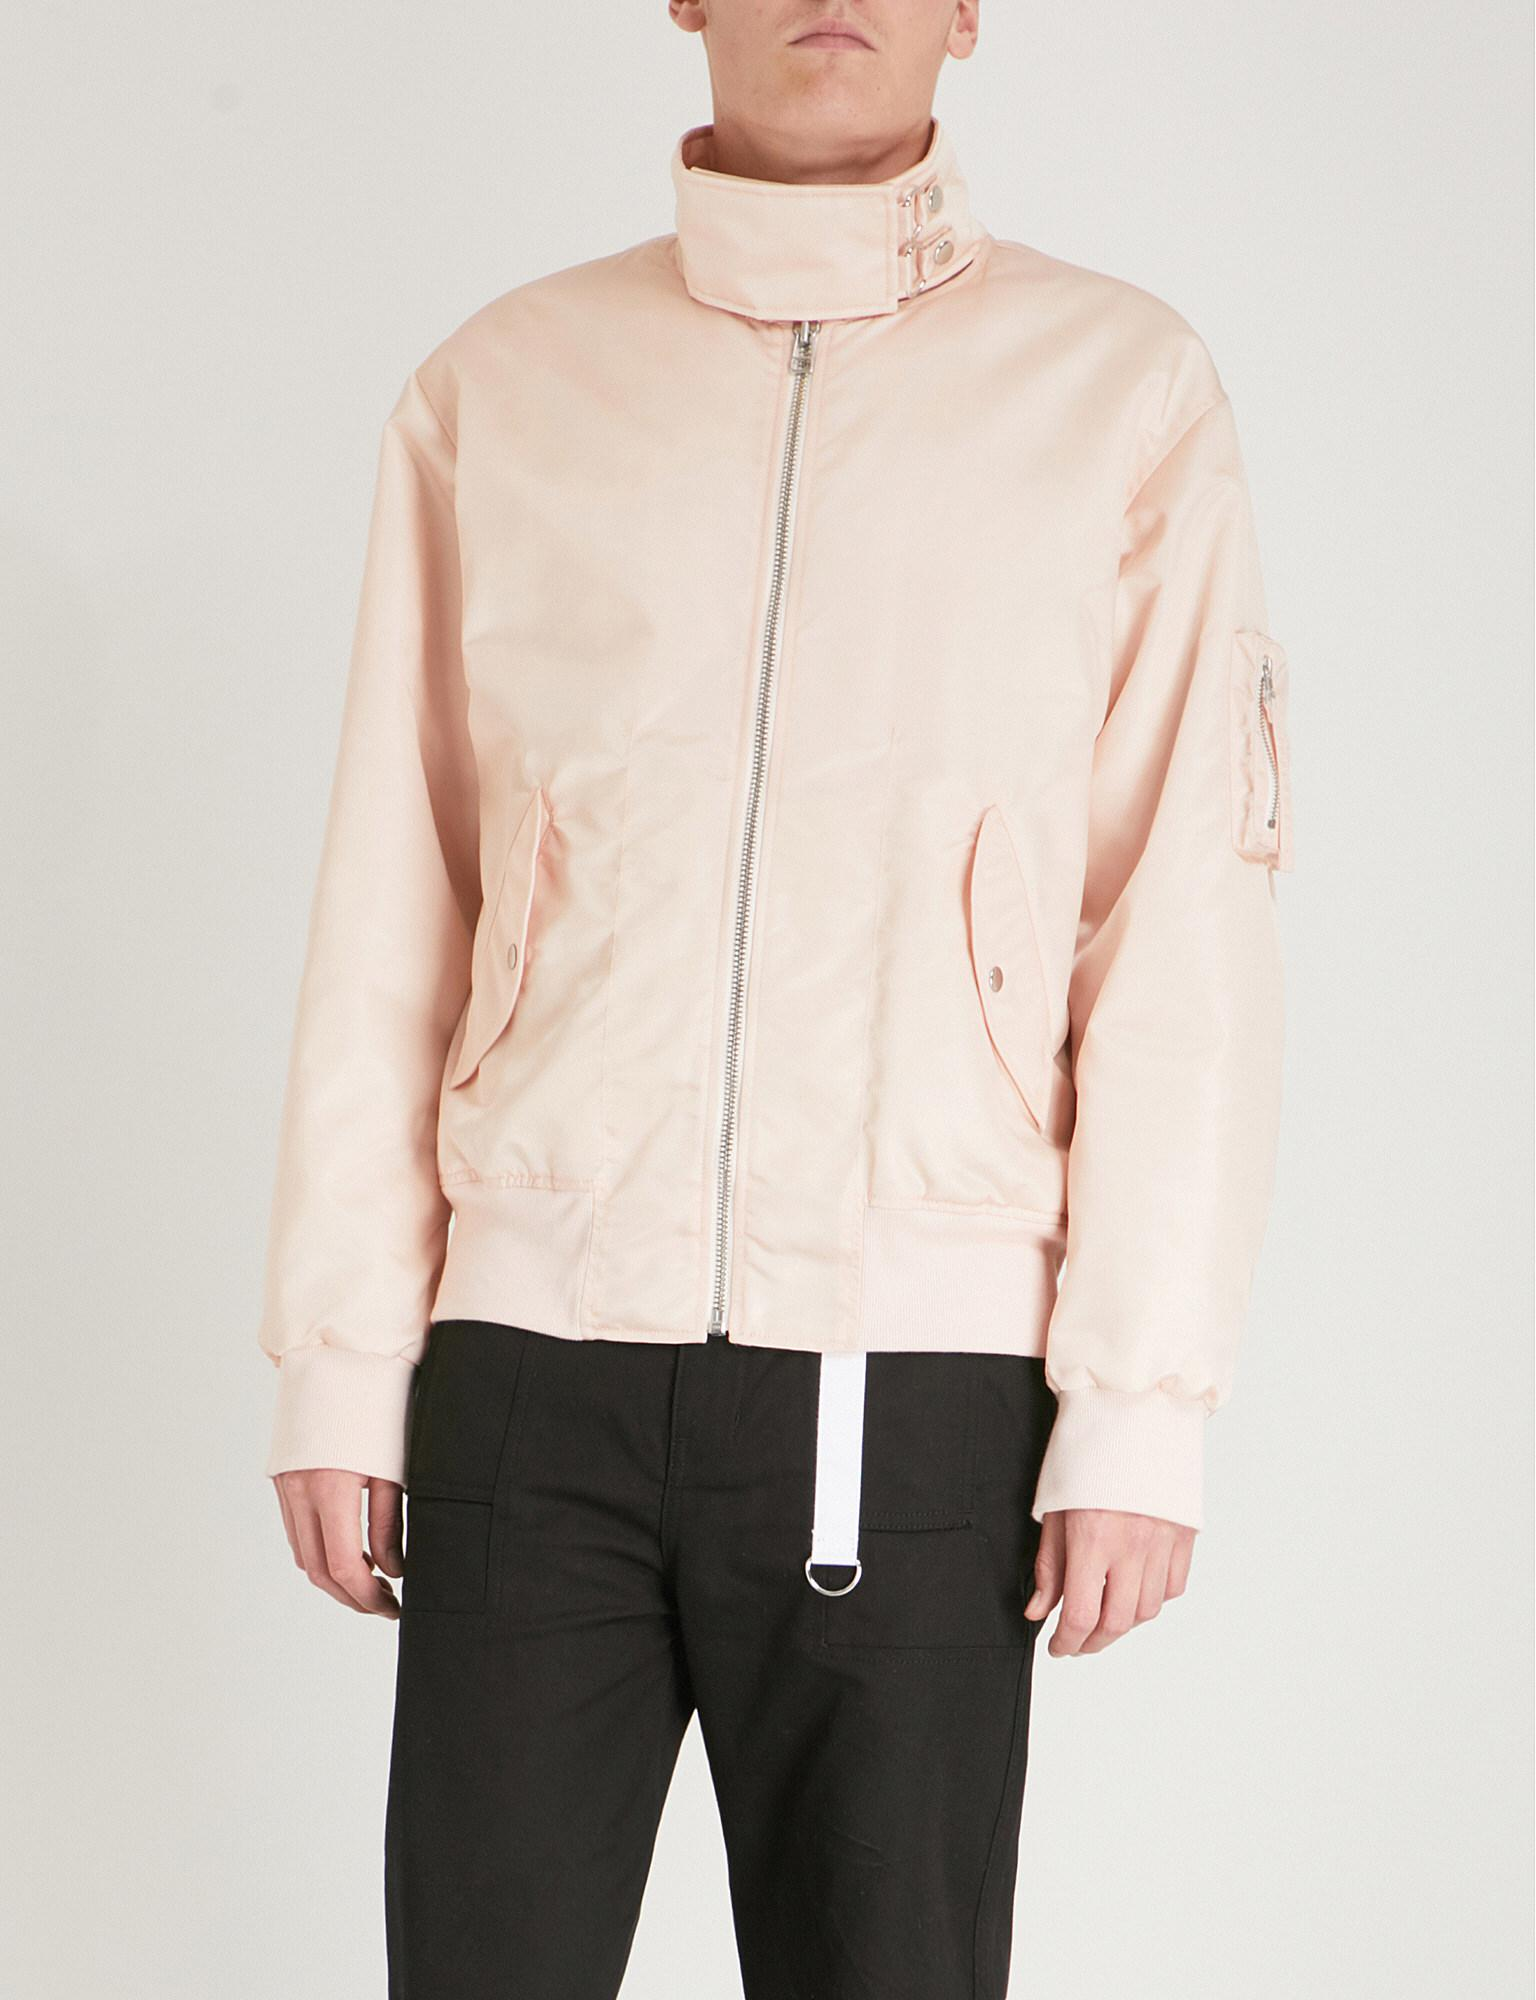 Helmut Lang Synthetic Oversized-collar Bomber Jacket in Pale Pink (Pink) for Men